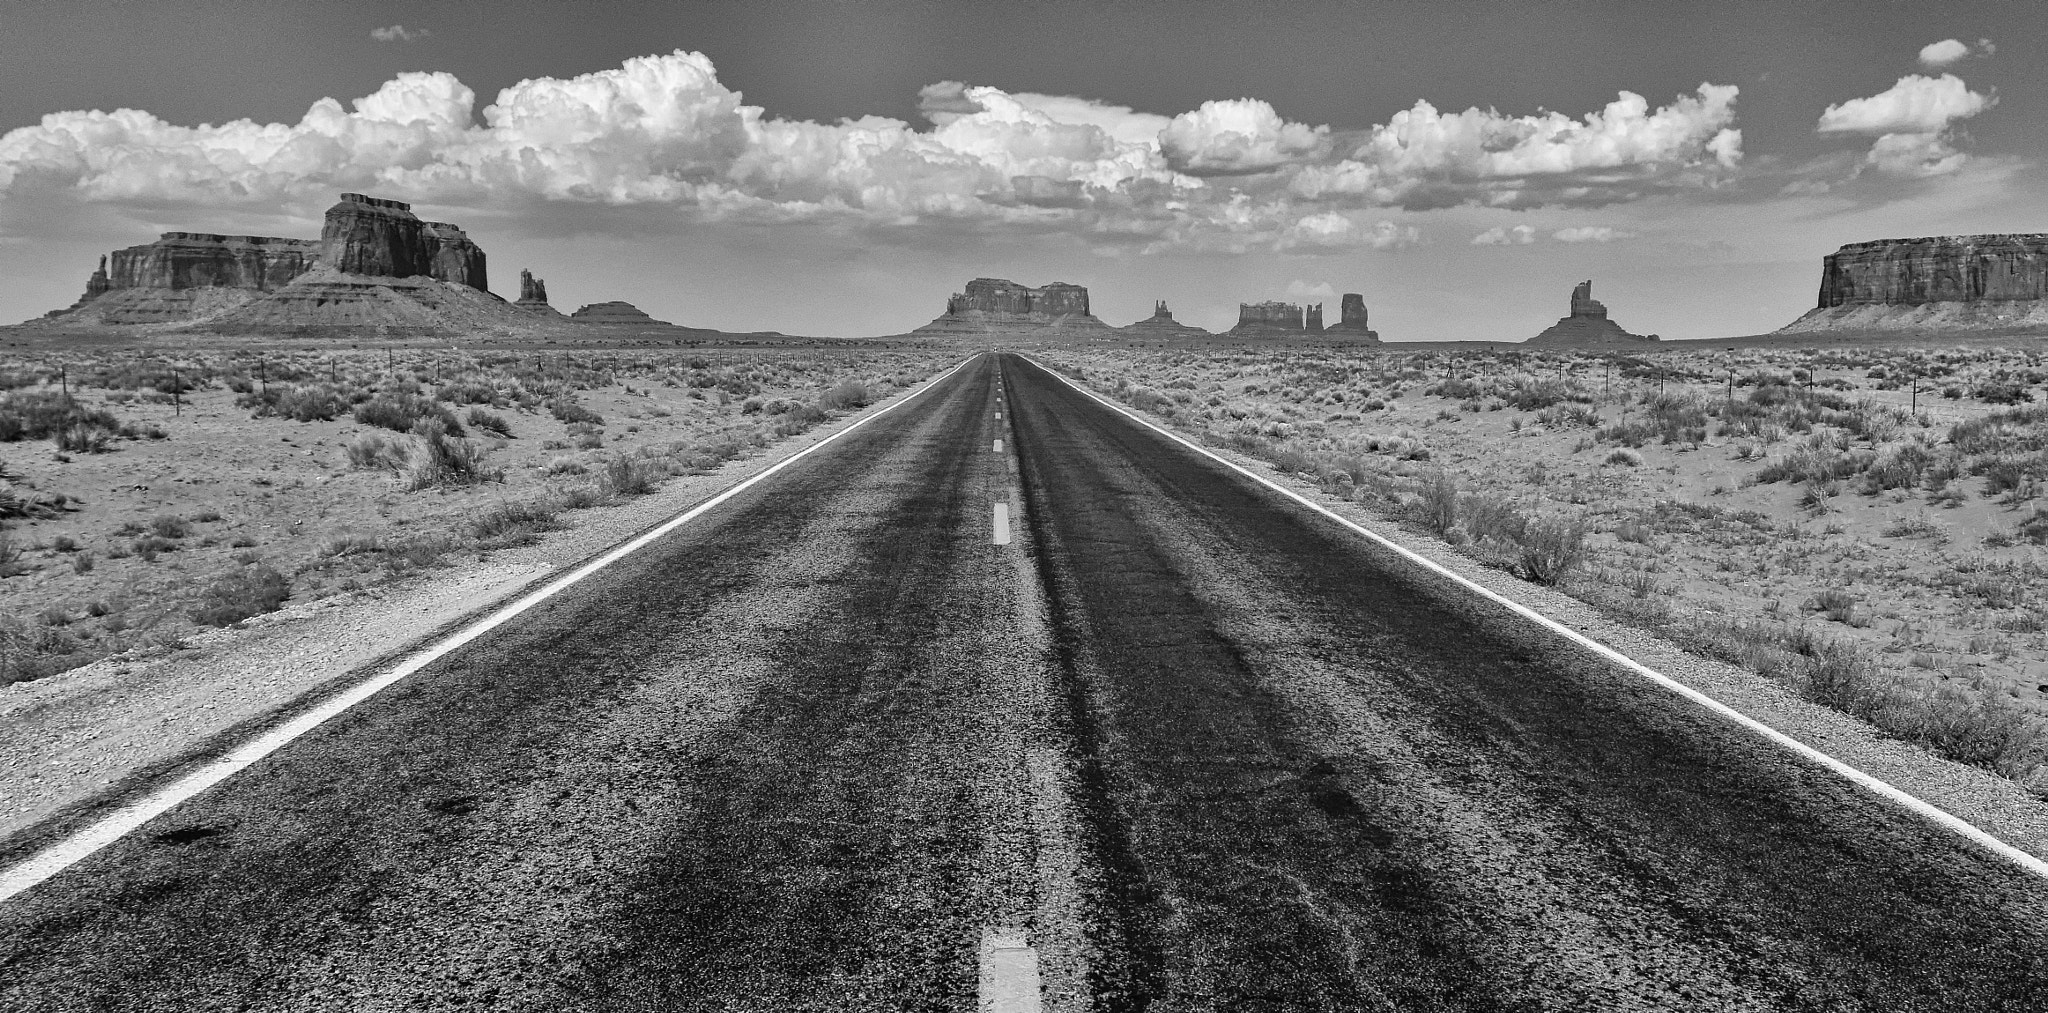 Photograph The Road to the Old West by Jeff Clow on 500px